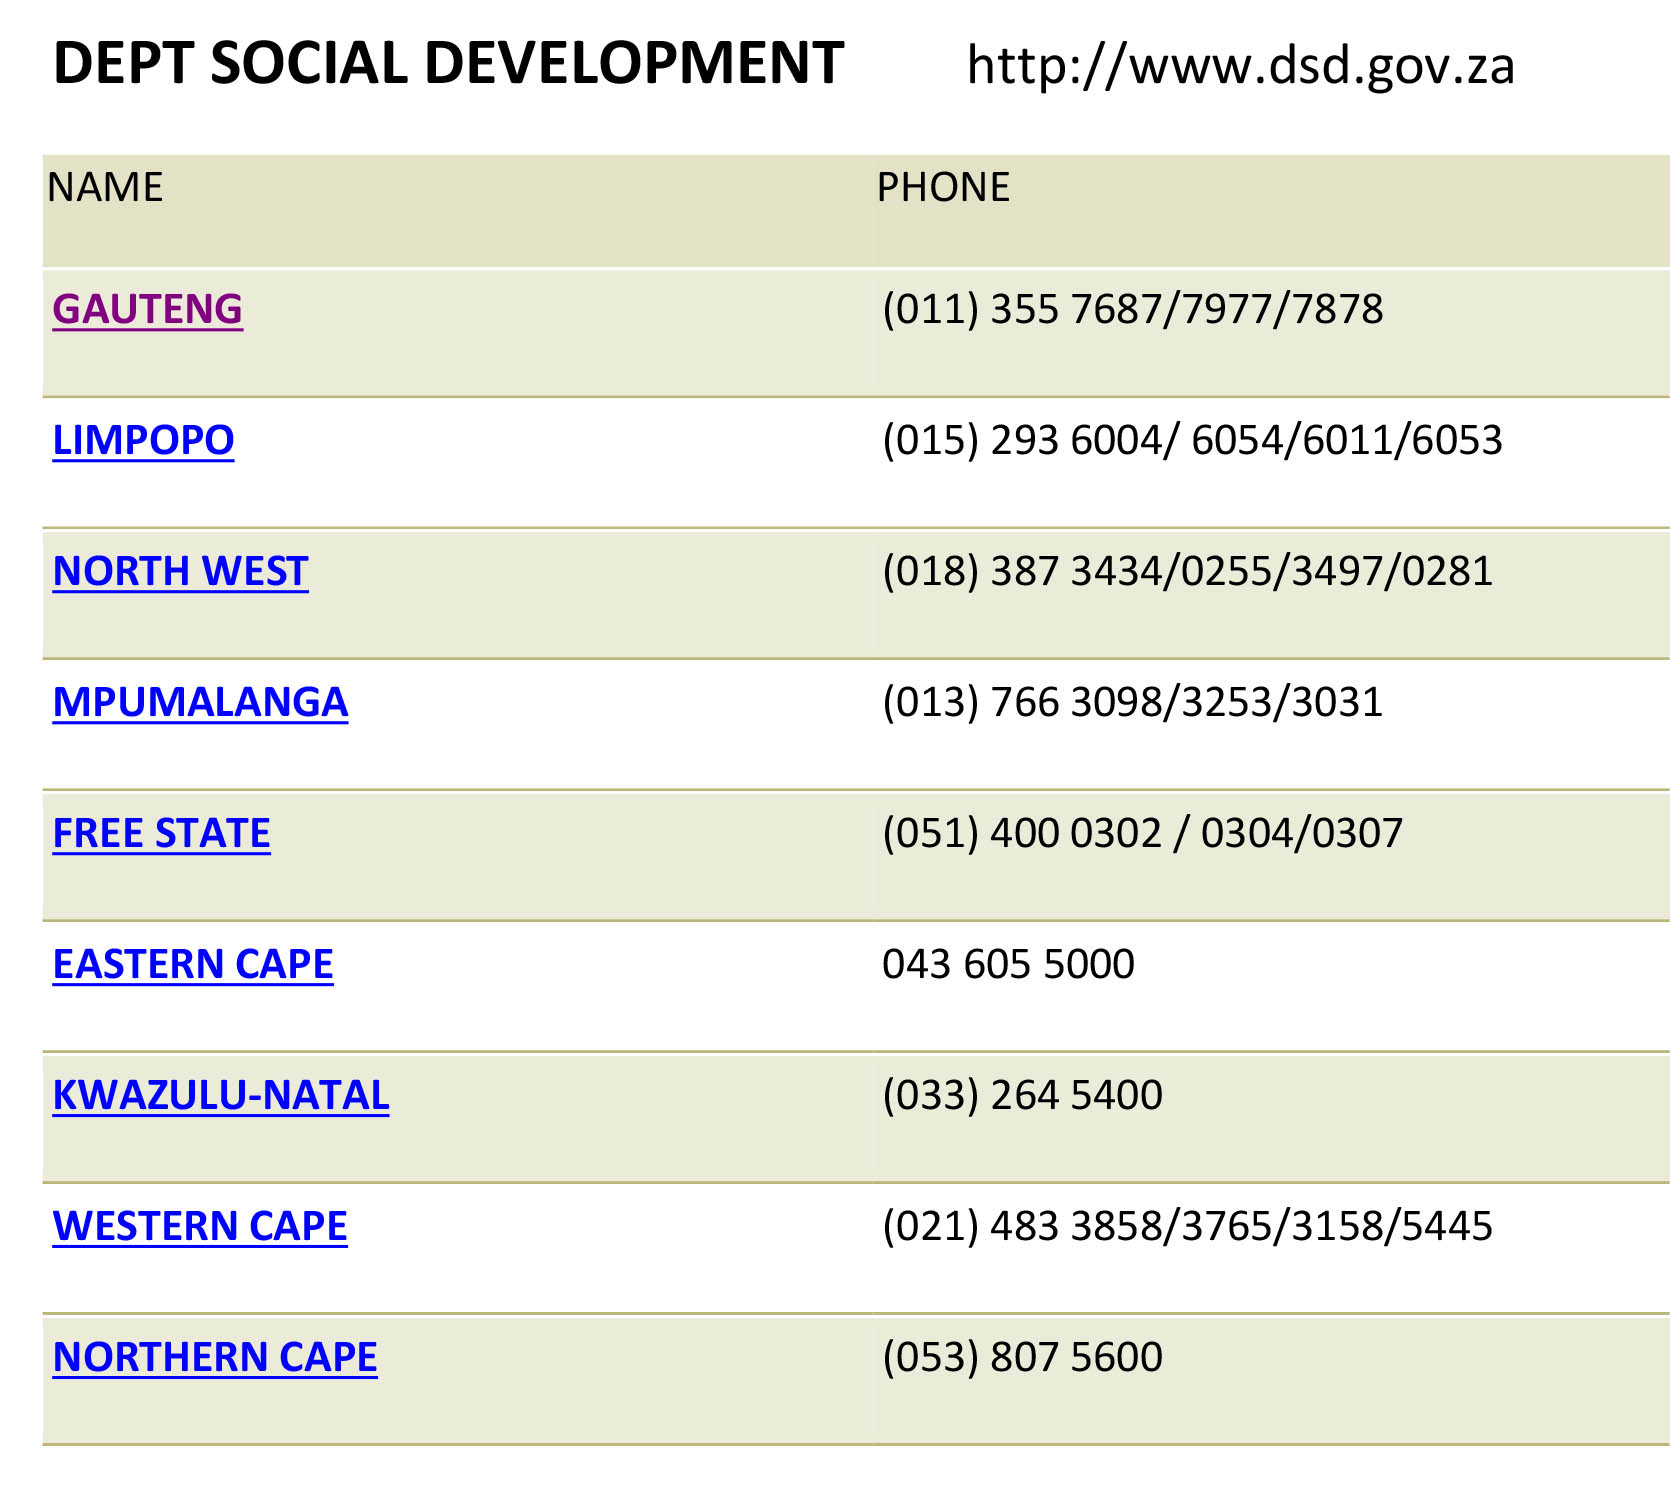 Department of Social Development Contacts Countrywide